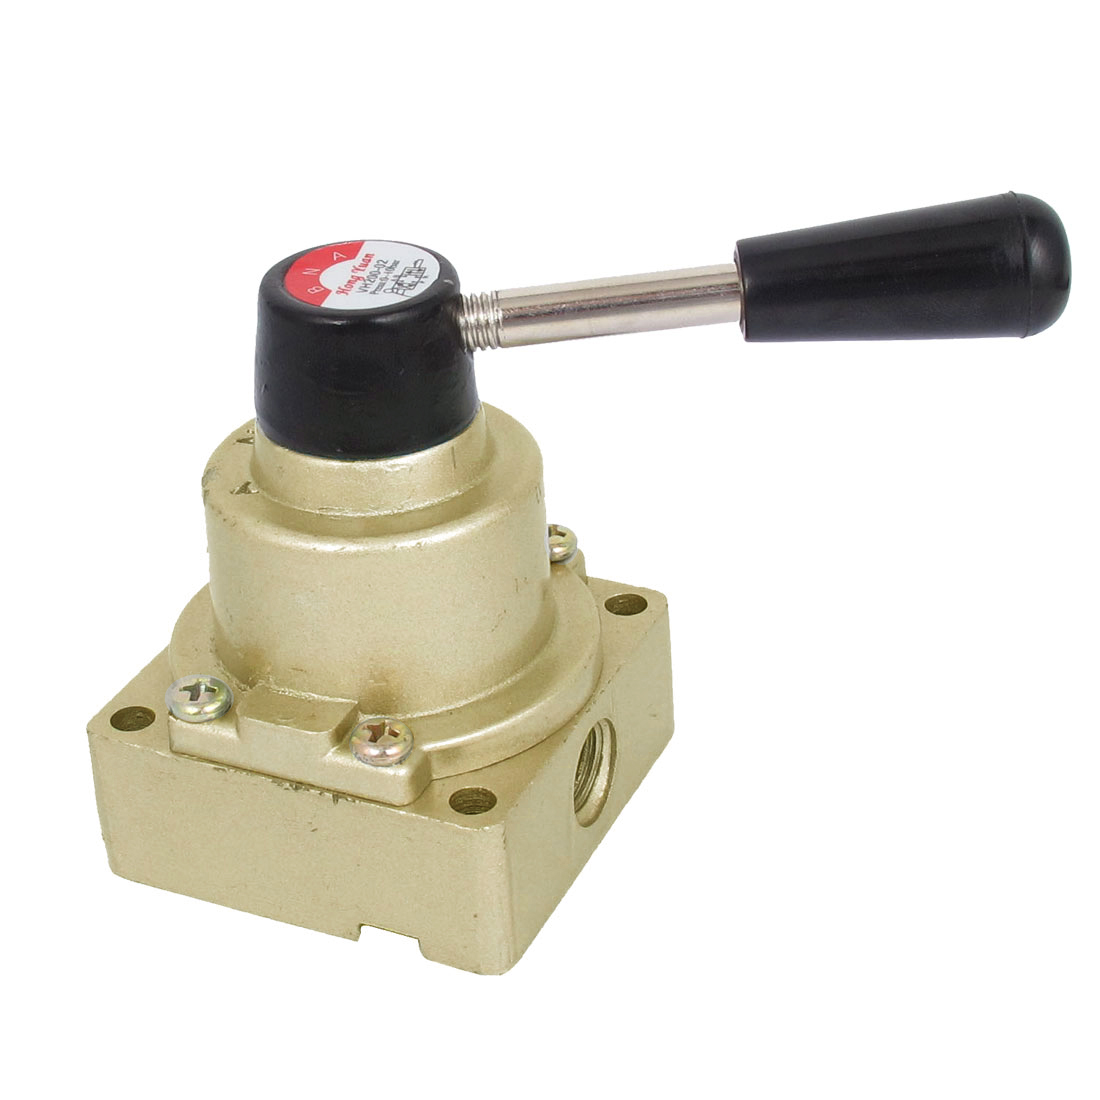 HV-02 Air Flow Control 3 Positions 4 Ways Pneumatic Hand Lever Valve